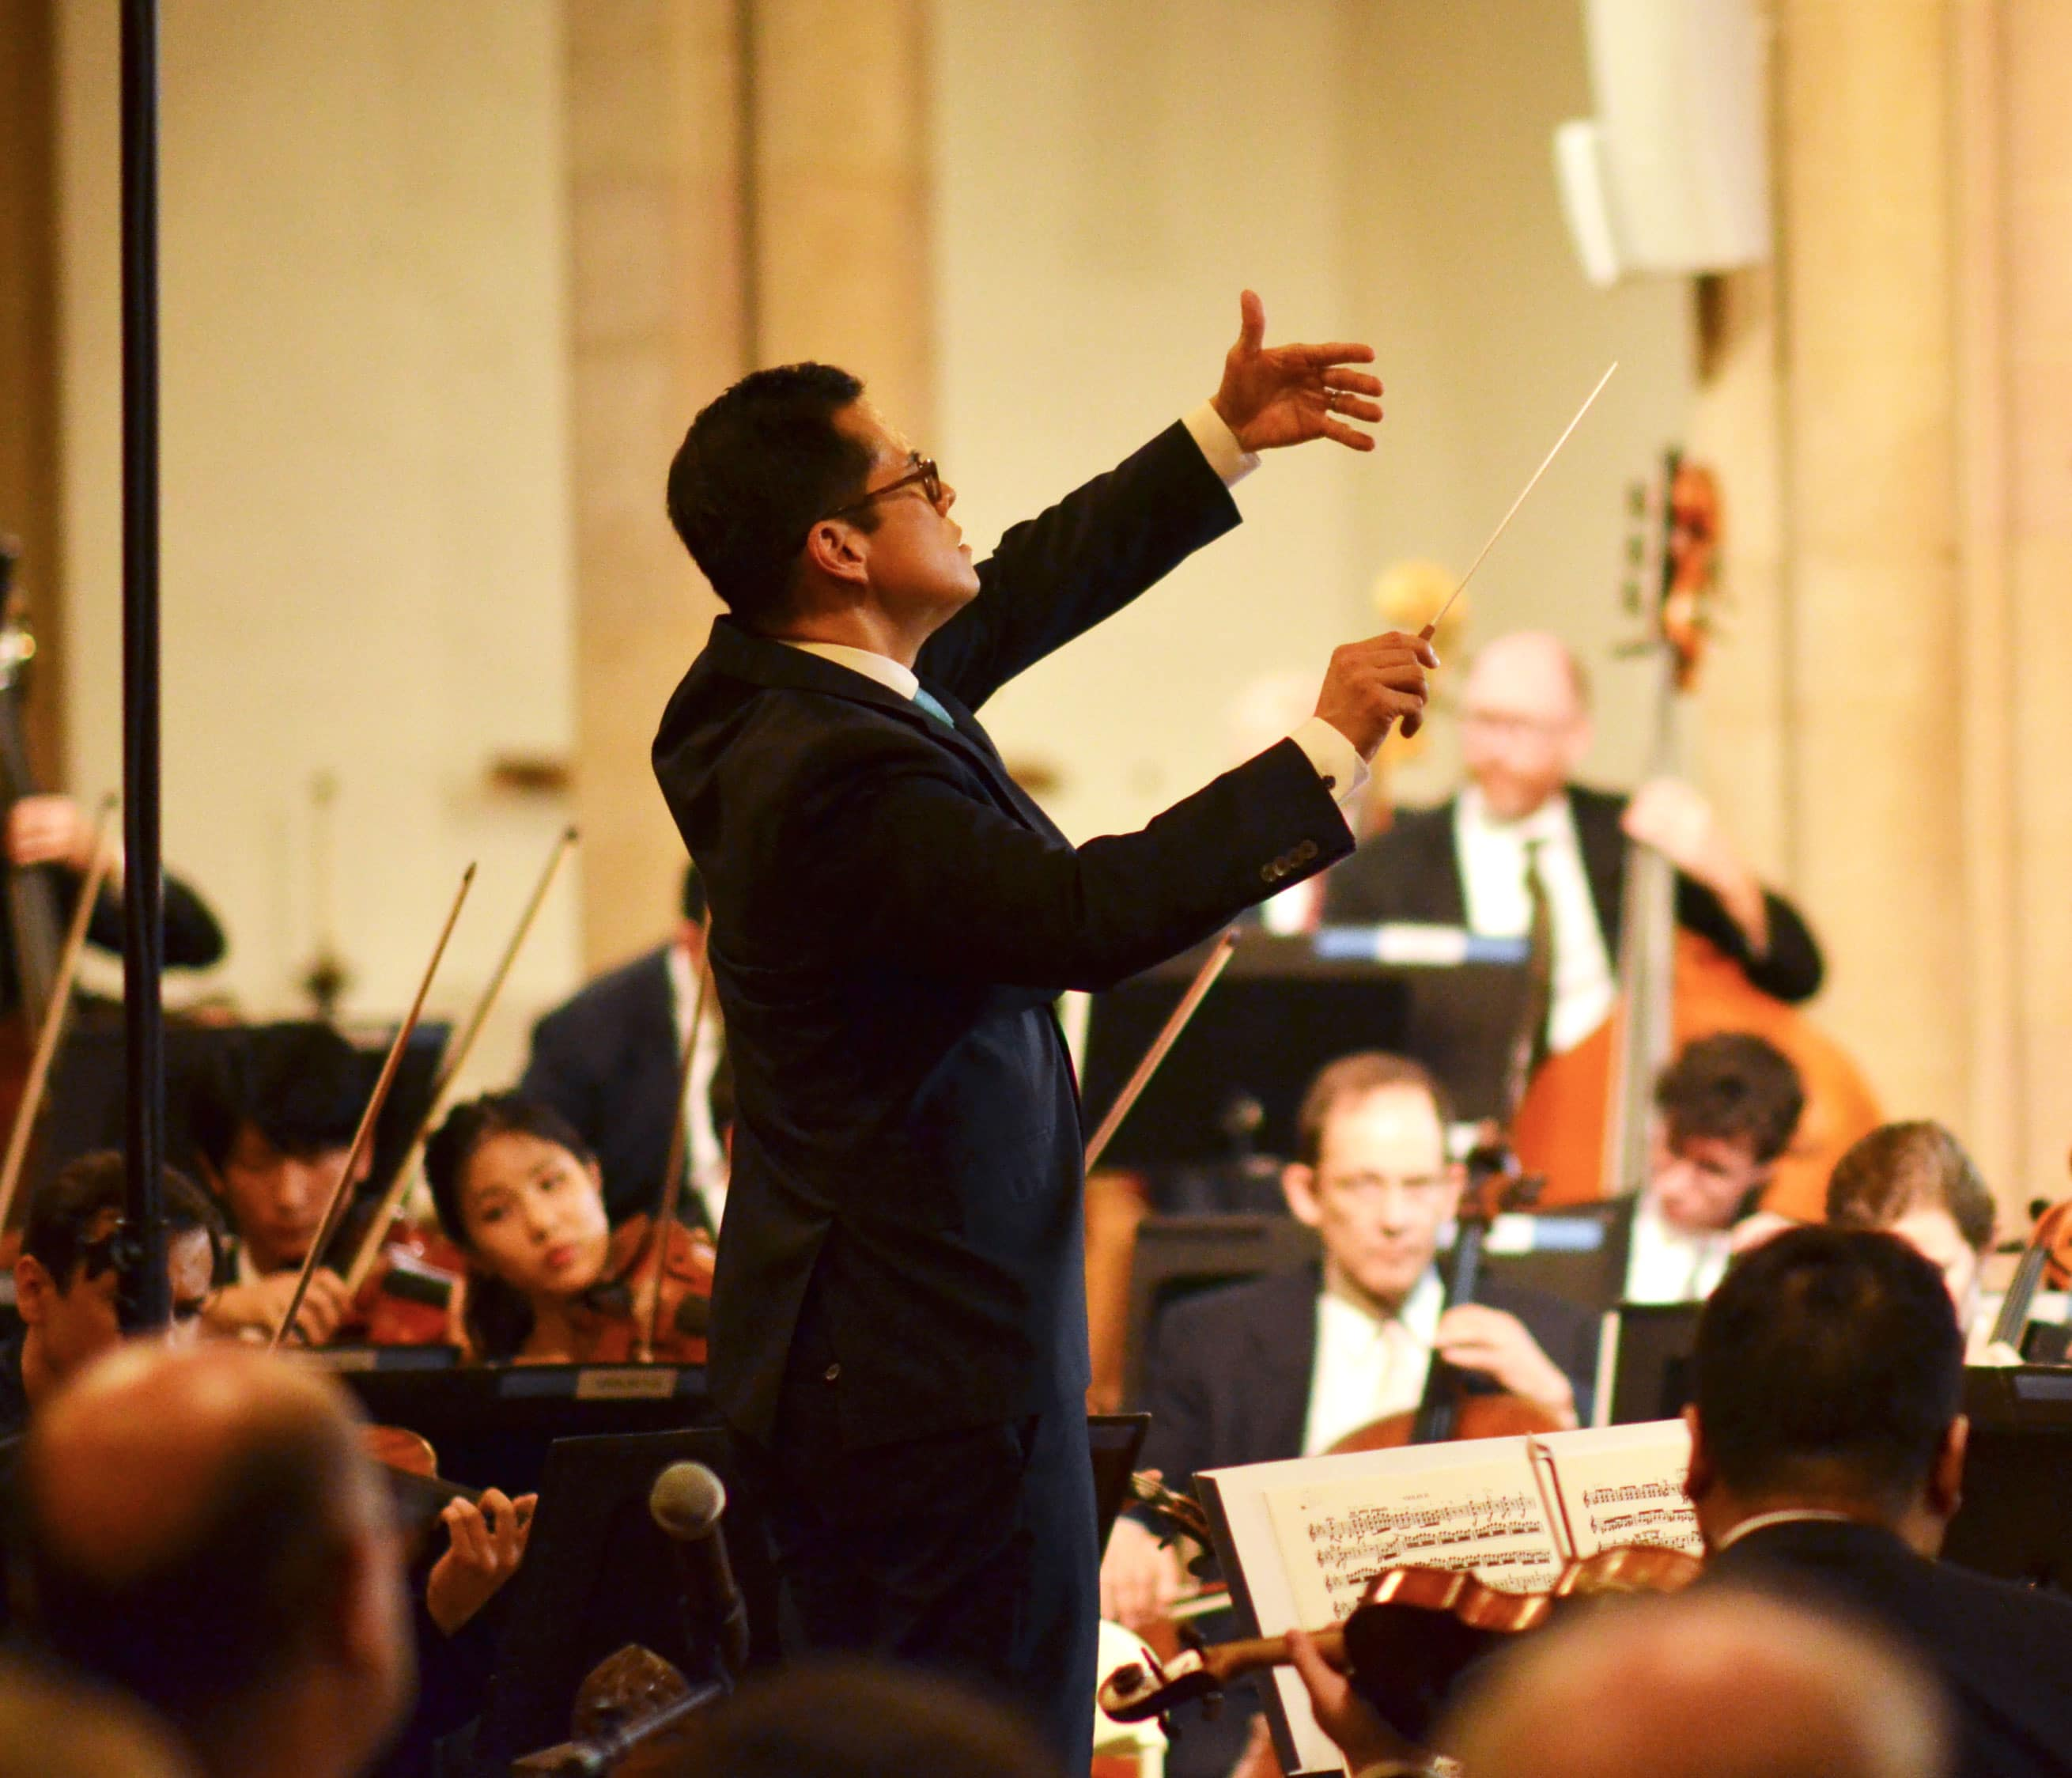 Met concertmaster gets 7-year conductor's contract